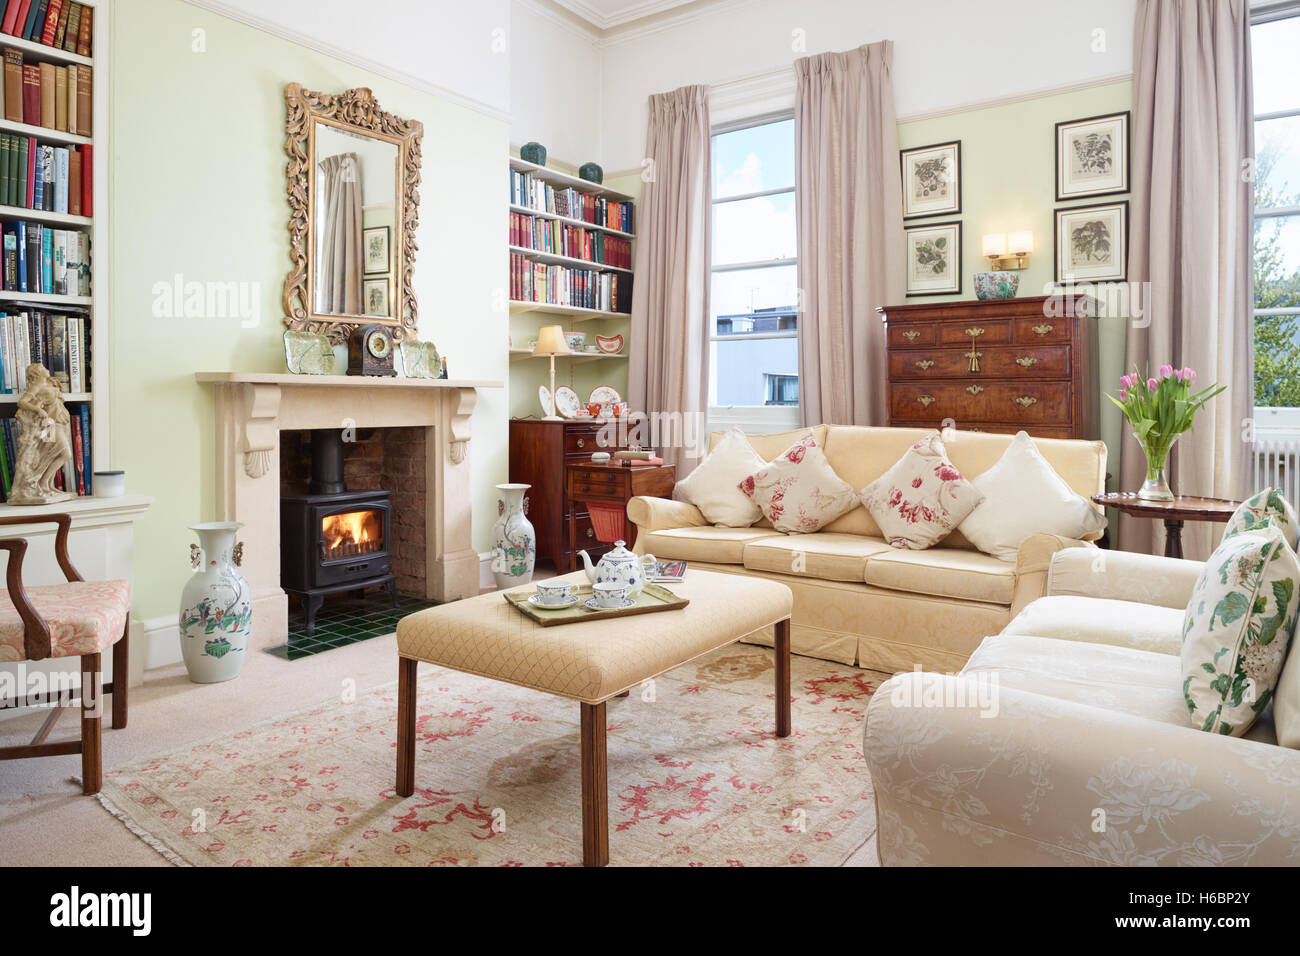 The living room in a period Georgian apartment showing antique furniture & paintings. Gloucestershire, UK - Stock Image